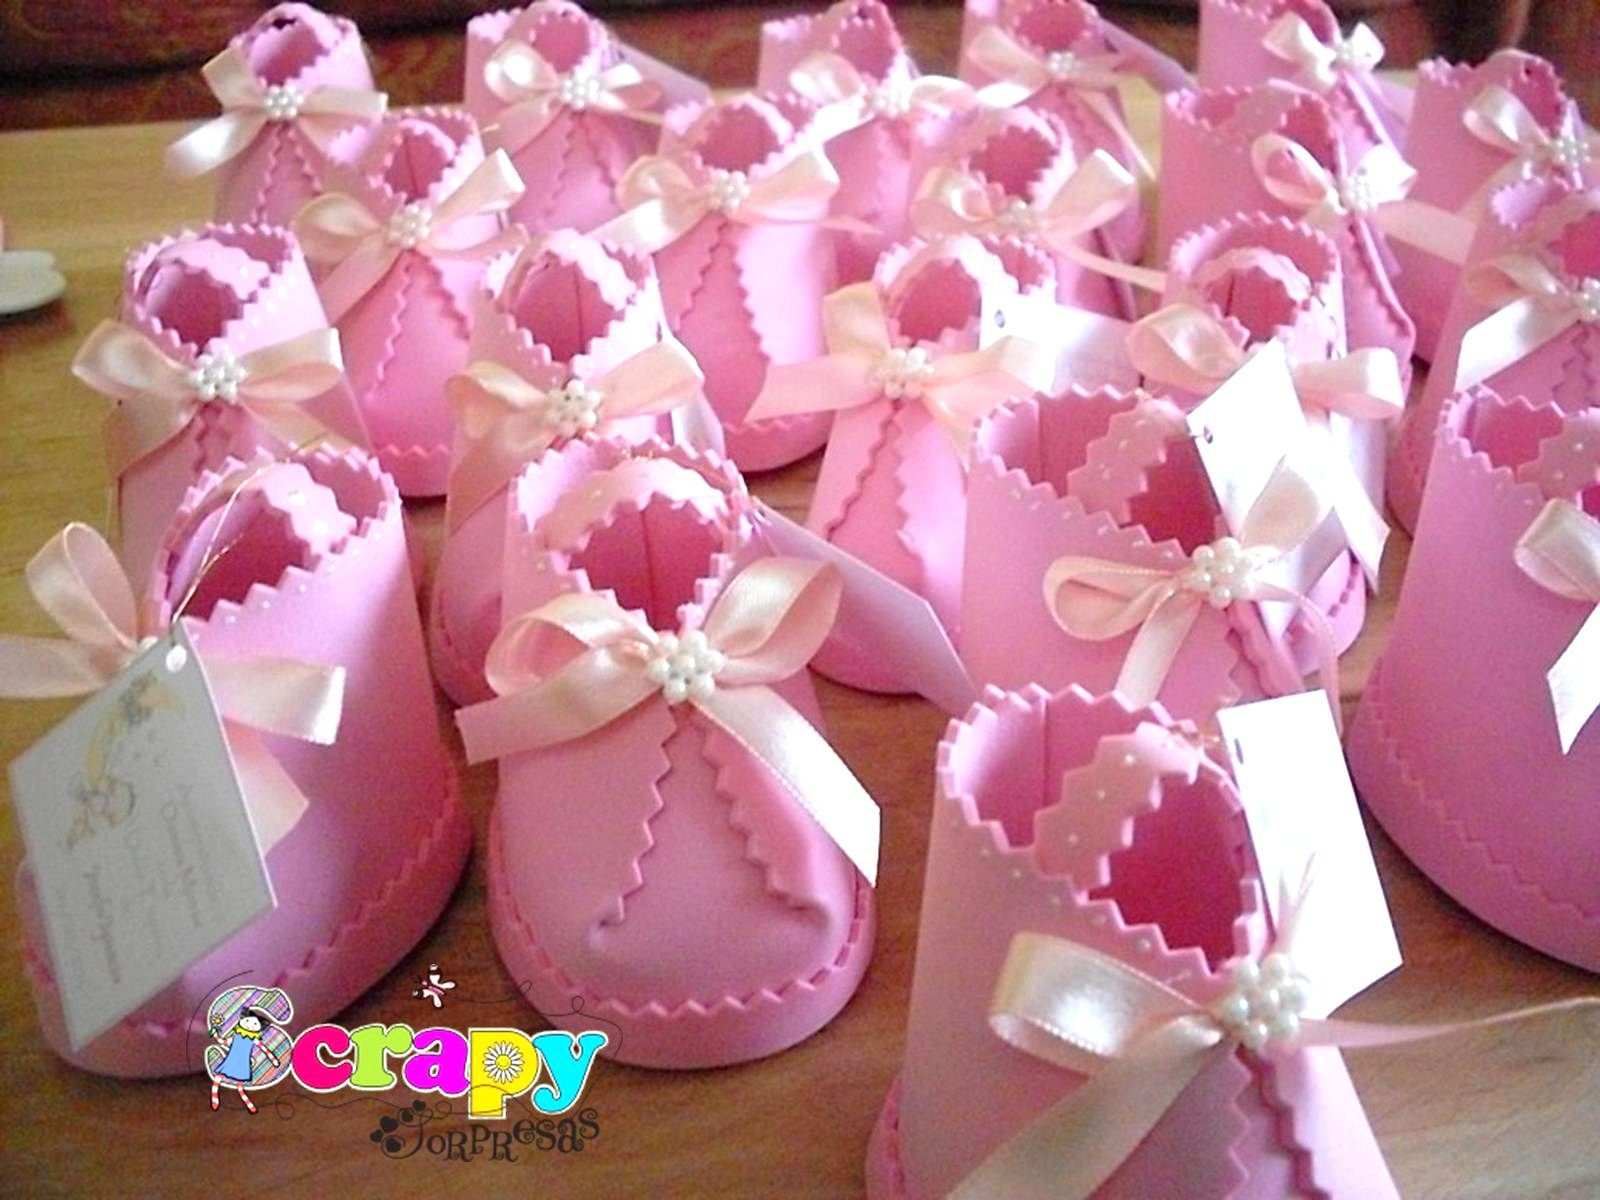 SCRAPY sorpresas: Zapatitos Baby Shower | Citas | Pinterest | Bebé ...